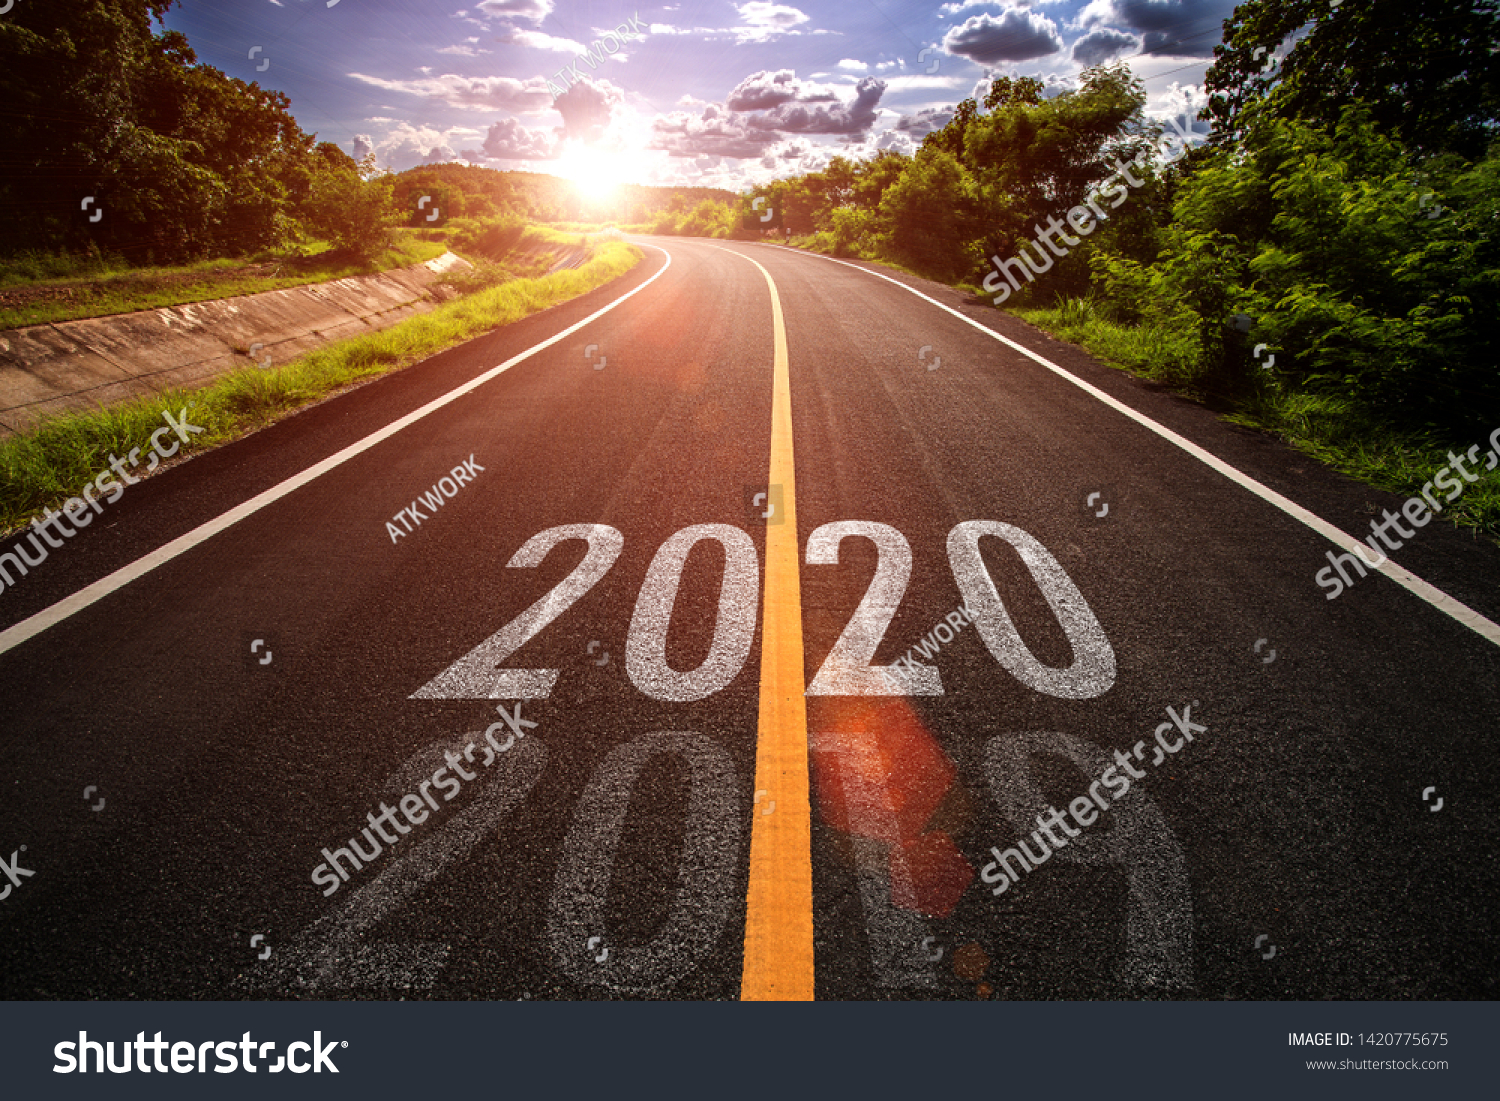 The word 2020 written on highway road in the middle of empty asphalt road at golden sunset and beautiful blue sky. Concept for new year 2020. #1420775675